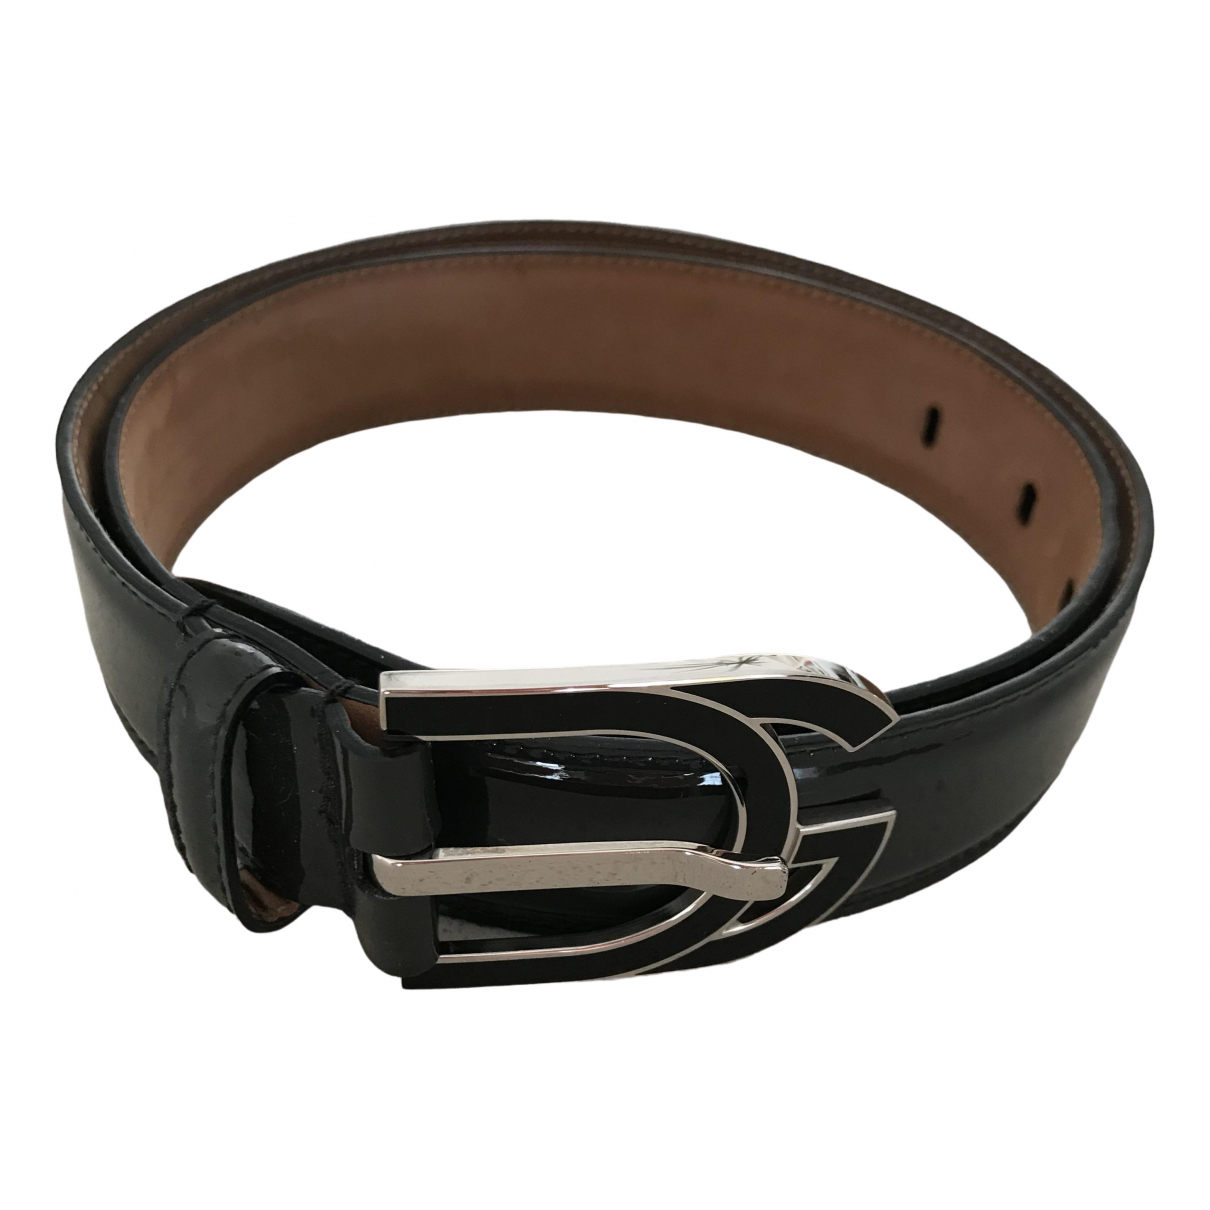 Dolce & Gabbana \N Grey Patent leather belt for Women 75 cm